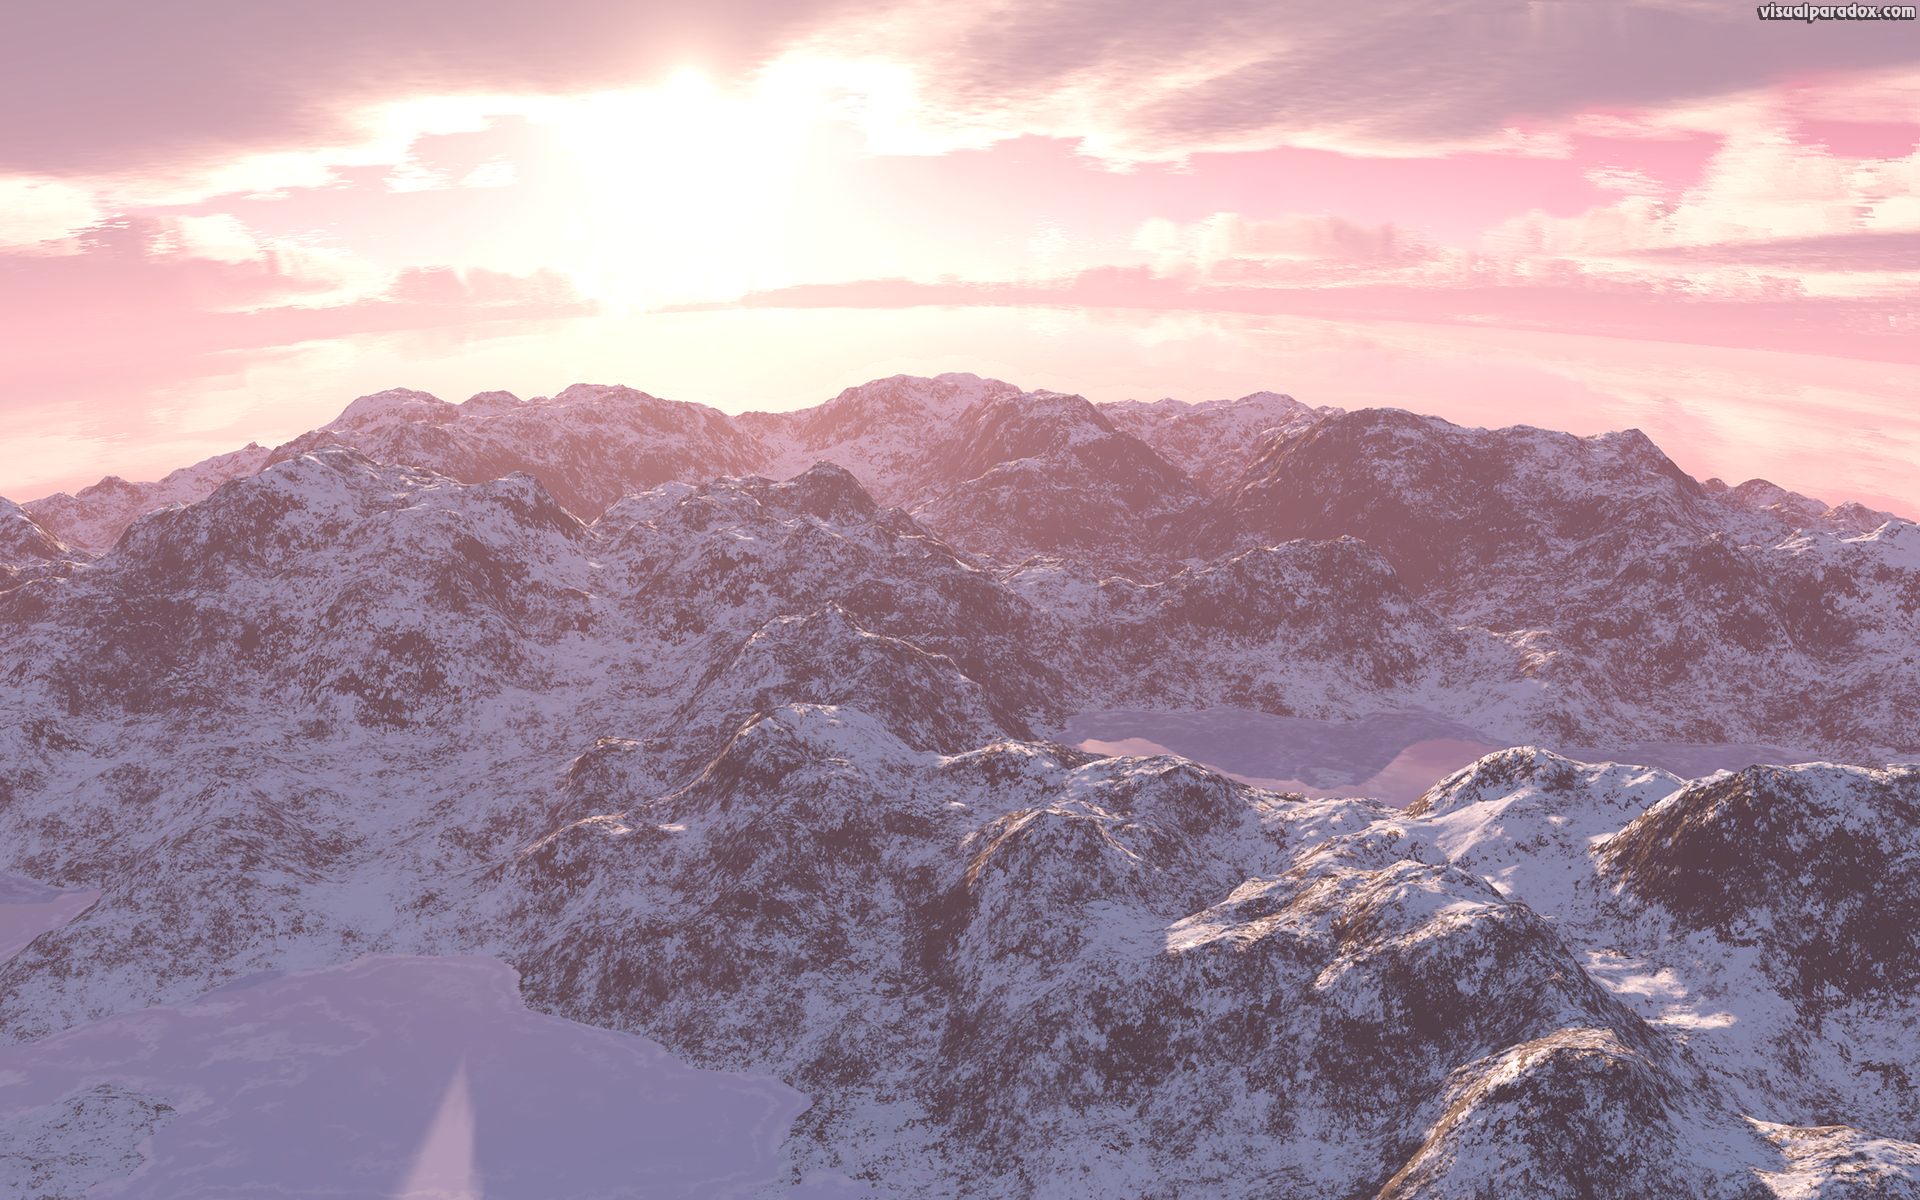 mountain, snow, frozen, lake, cold, crisp, frigid, clouds, mountains, lakes, 3d, wallpaper